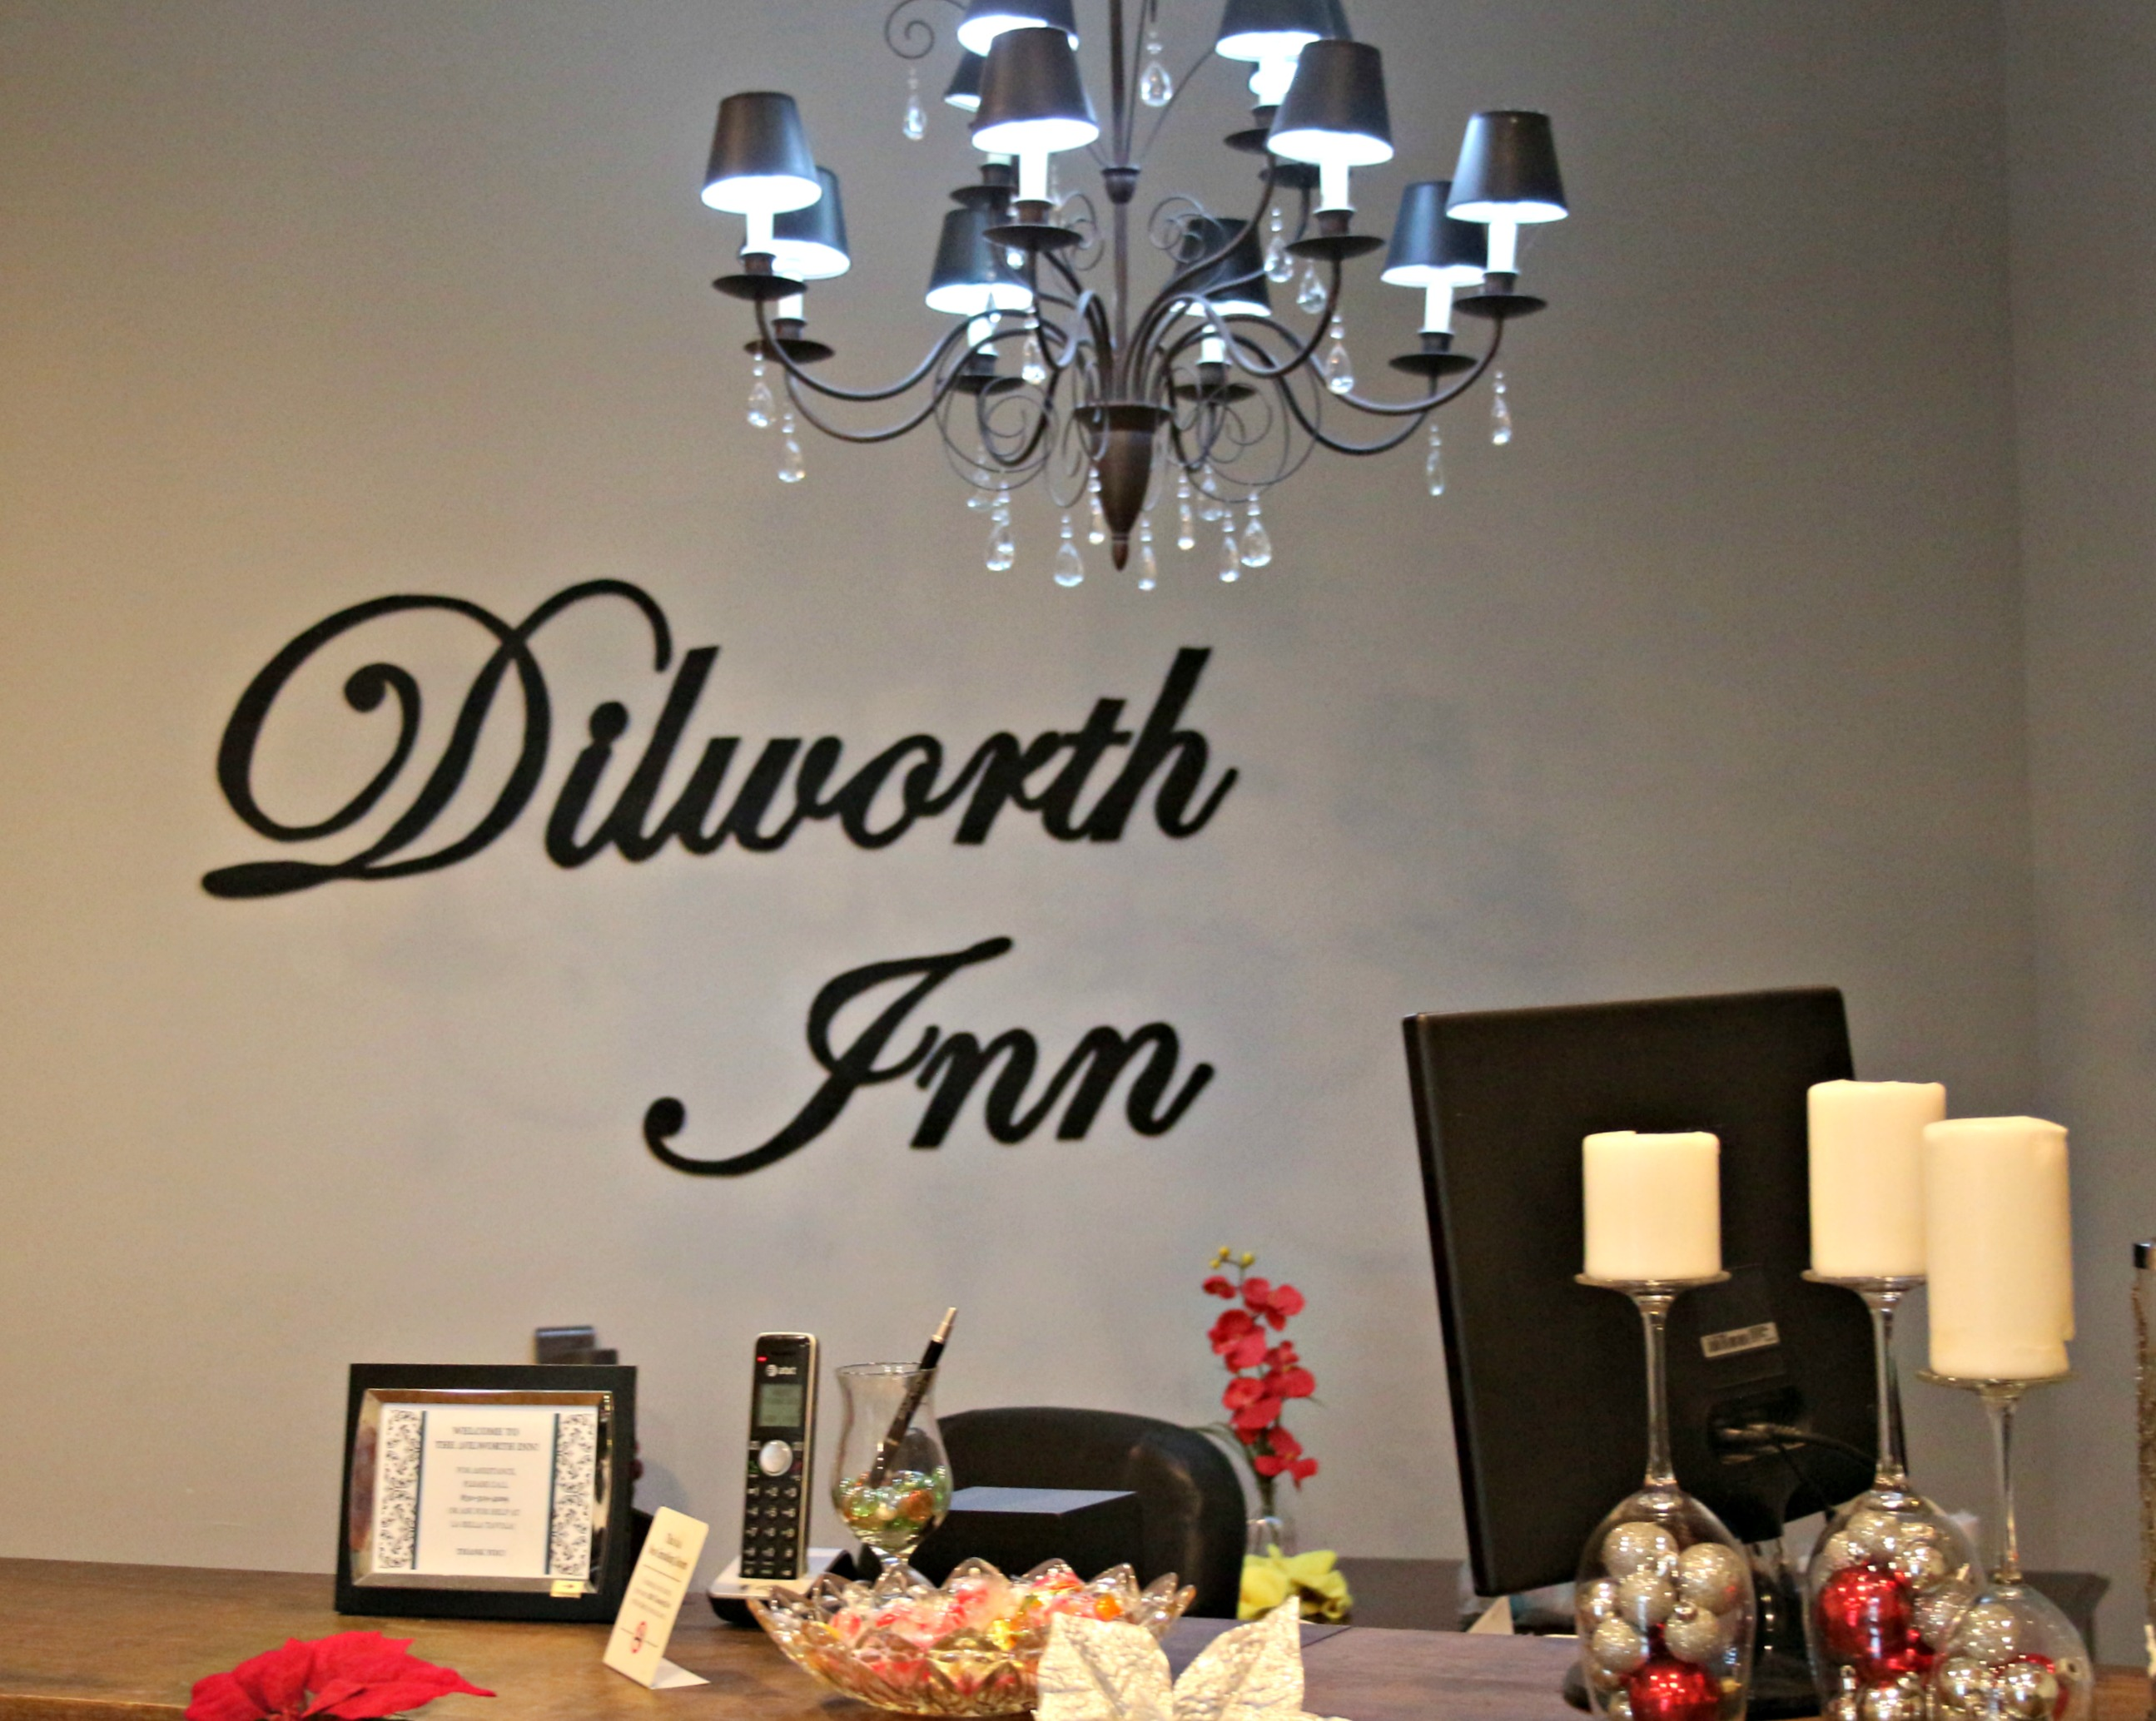 Dilworth Inn and Suites|Gonzales Texas